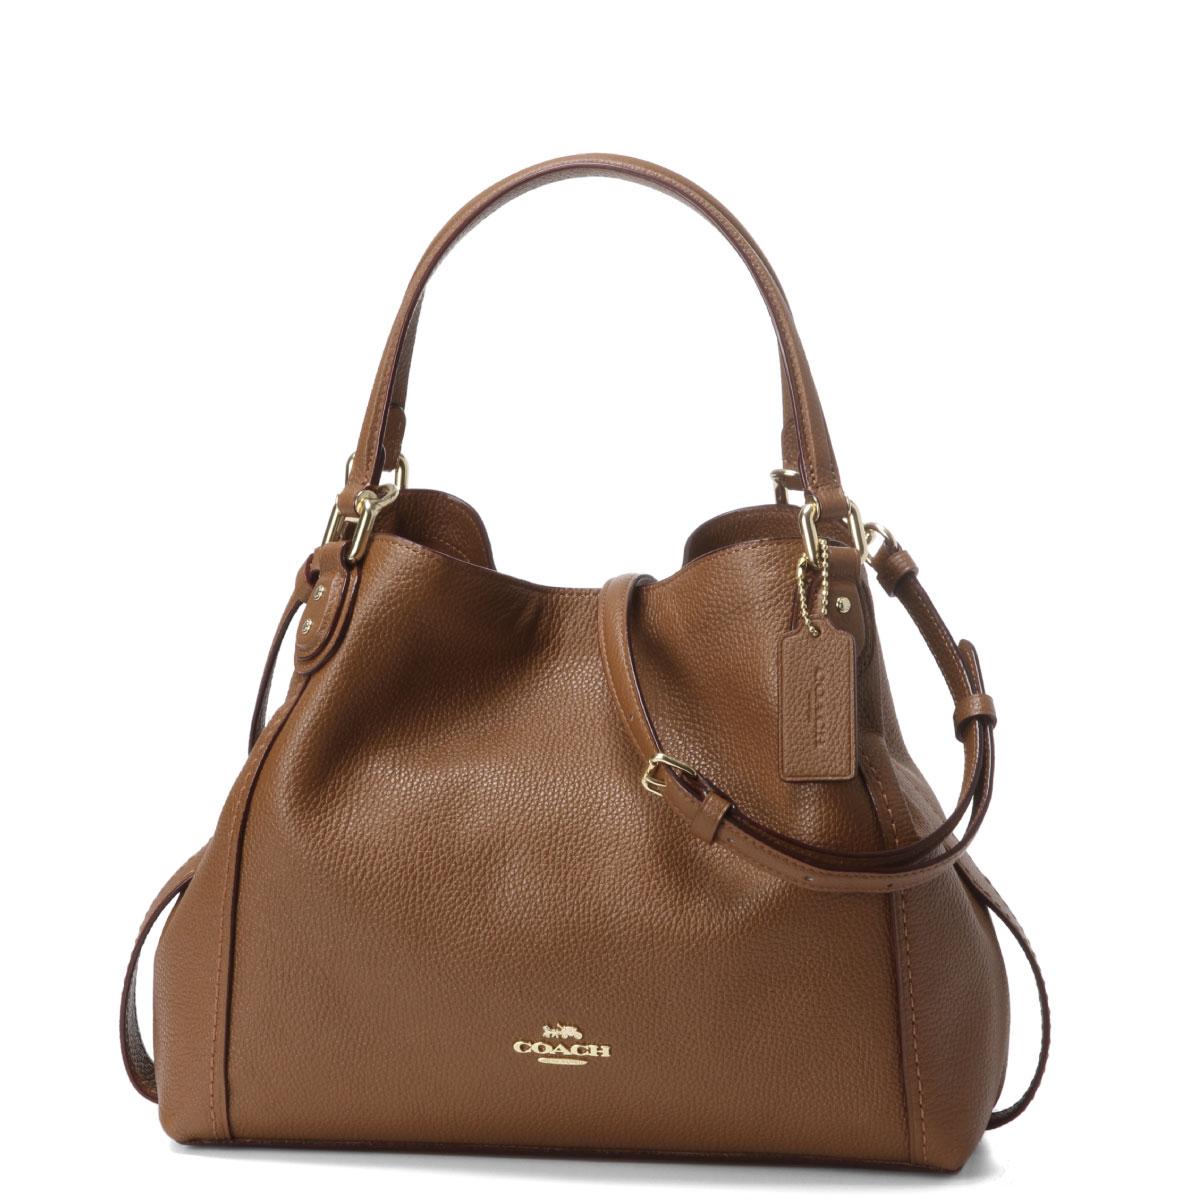 Lil4a Edy Shoulders Edie Handbag Coach Brown Bag 28 To Saddle Belonging Lady 57124 Li1941 nwON80vm